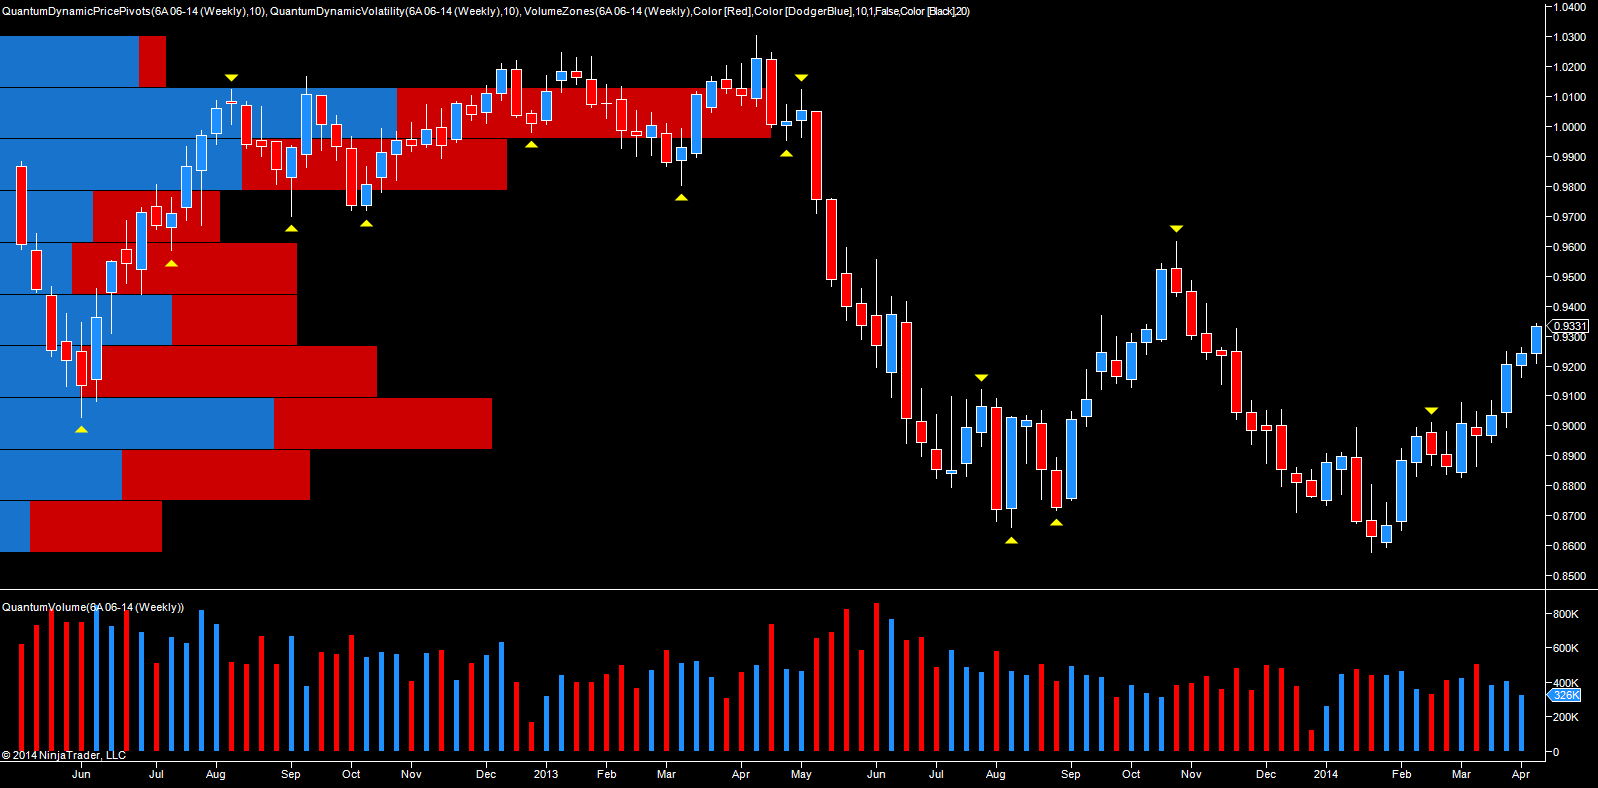 AUD/USD futures weekly chart